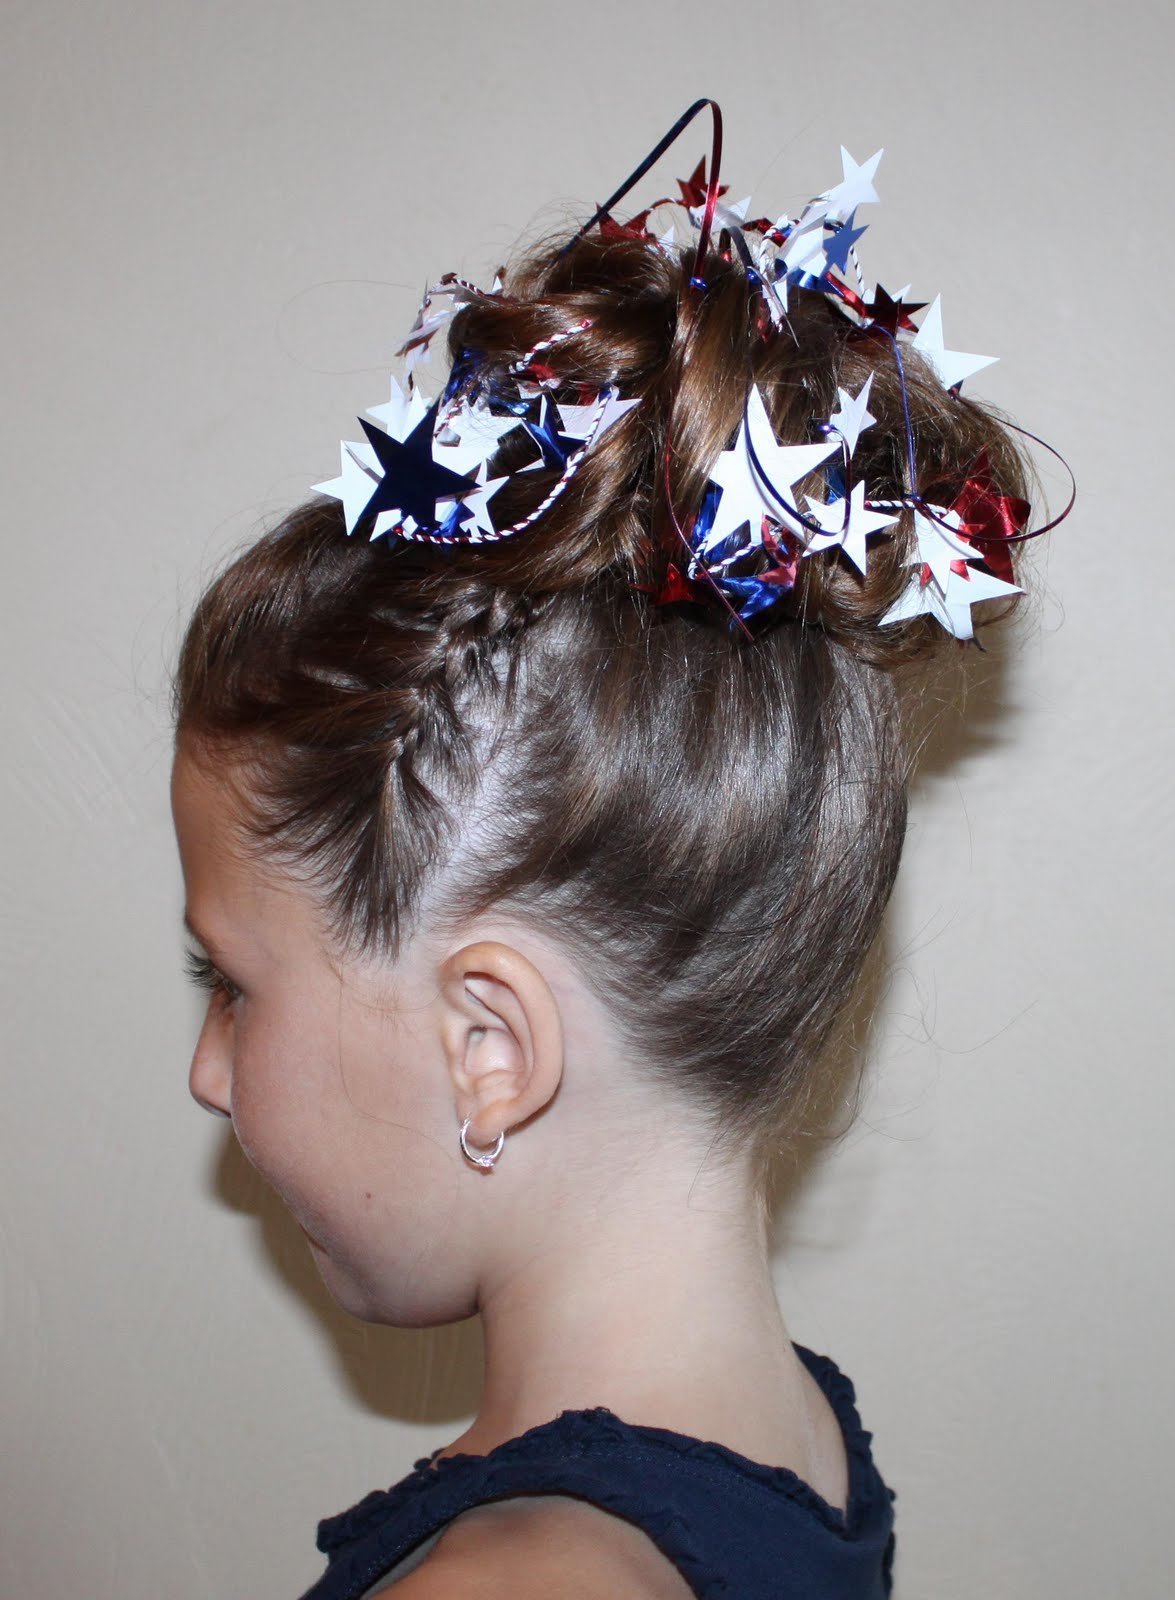 The Best Hairstyles For Girls The Wright Hair 4Th Of July Fancy Hair Pictures